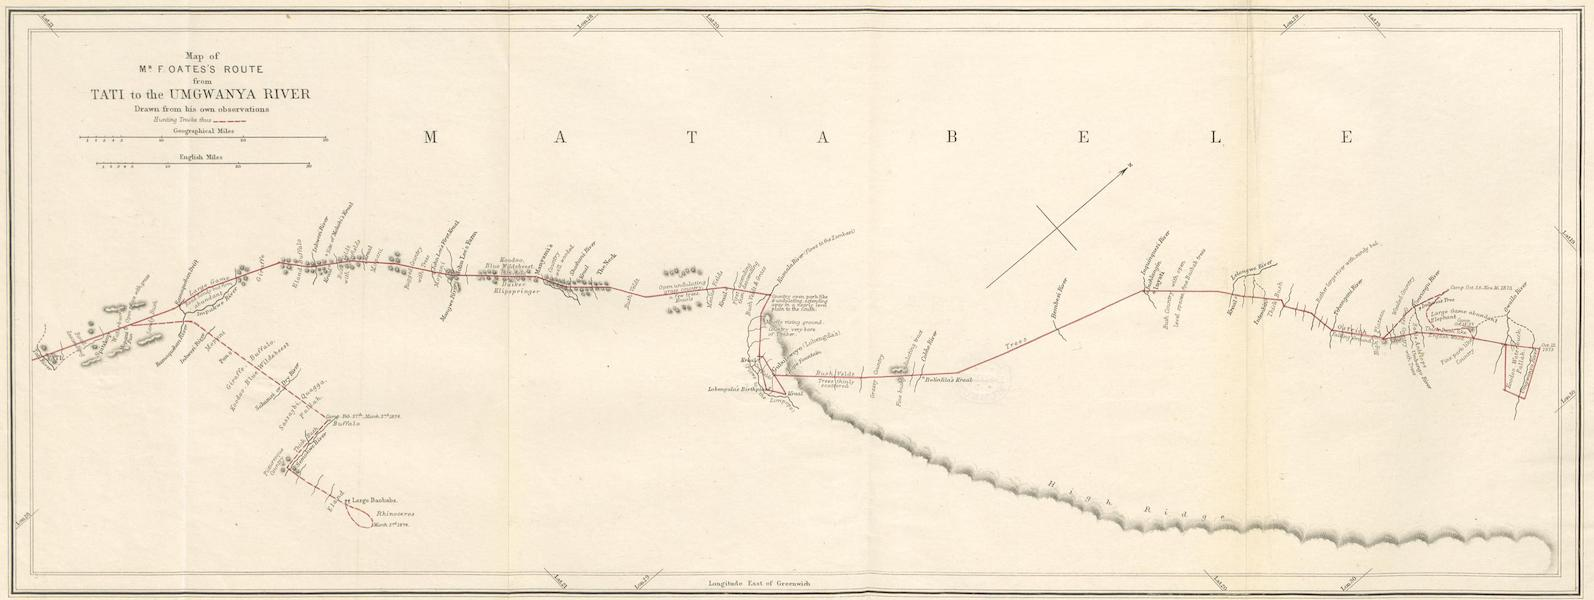 Matabele Land and the Victoria Falls - Map of Mr. F. Oates's Route from Tati to the Umgwanya River (1881)